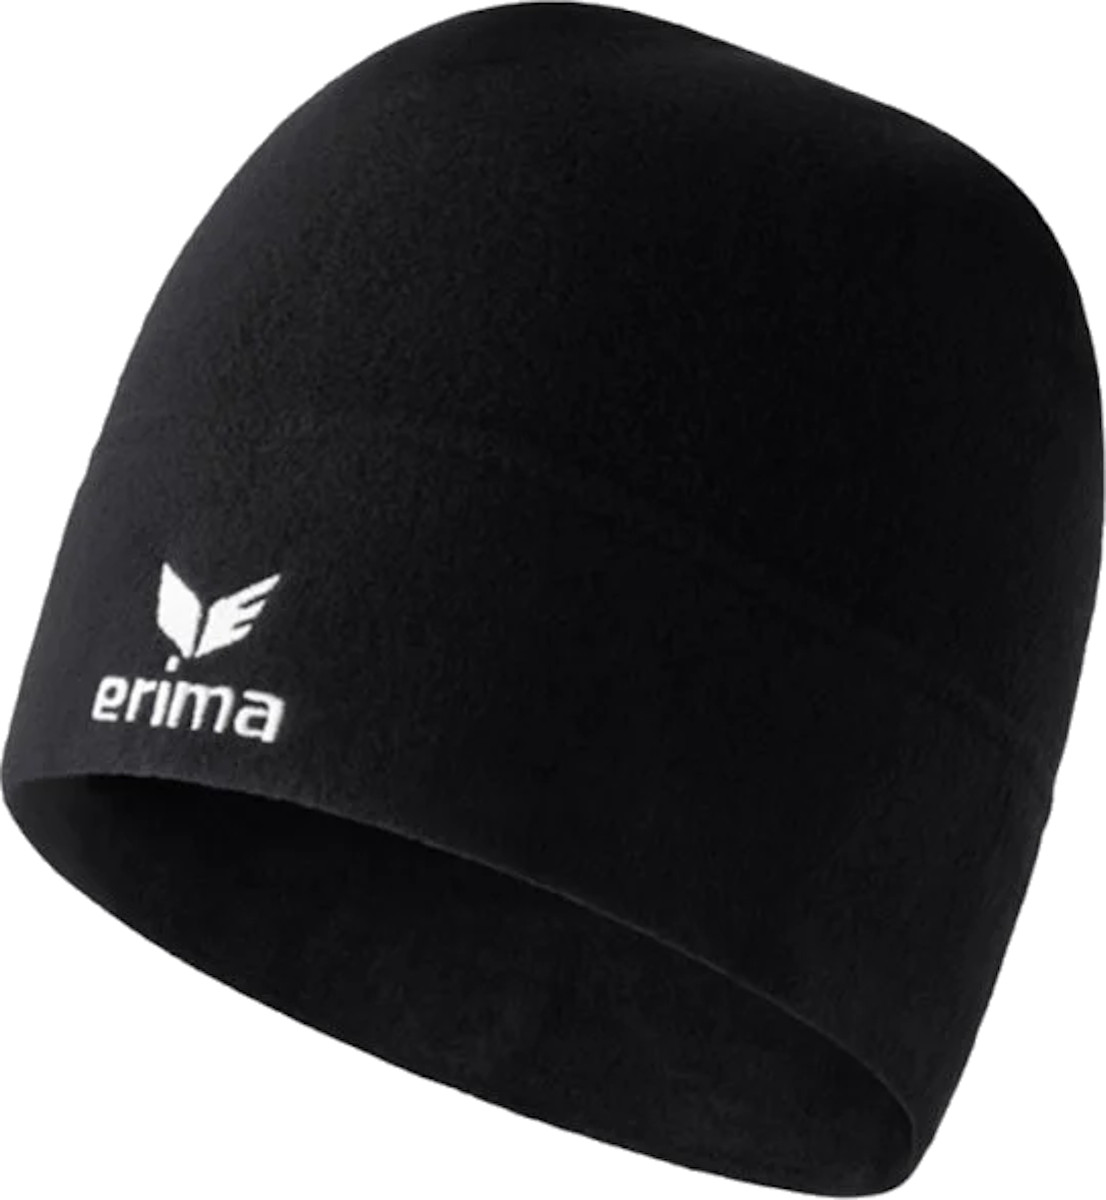 Cappello Erima Fleece beanie